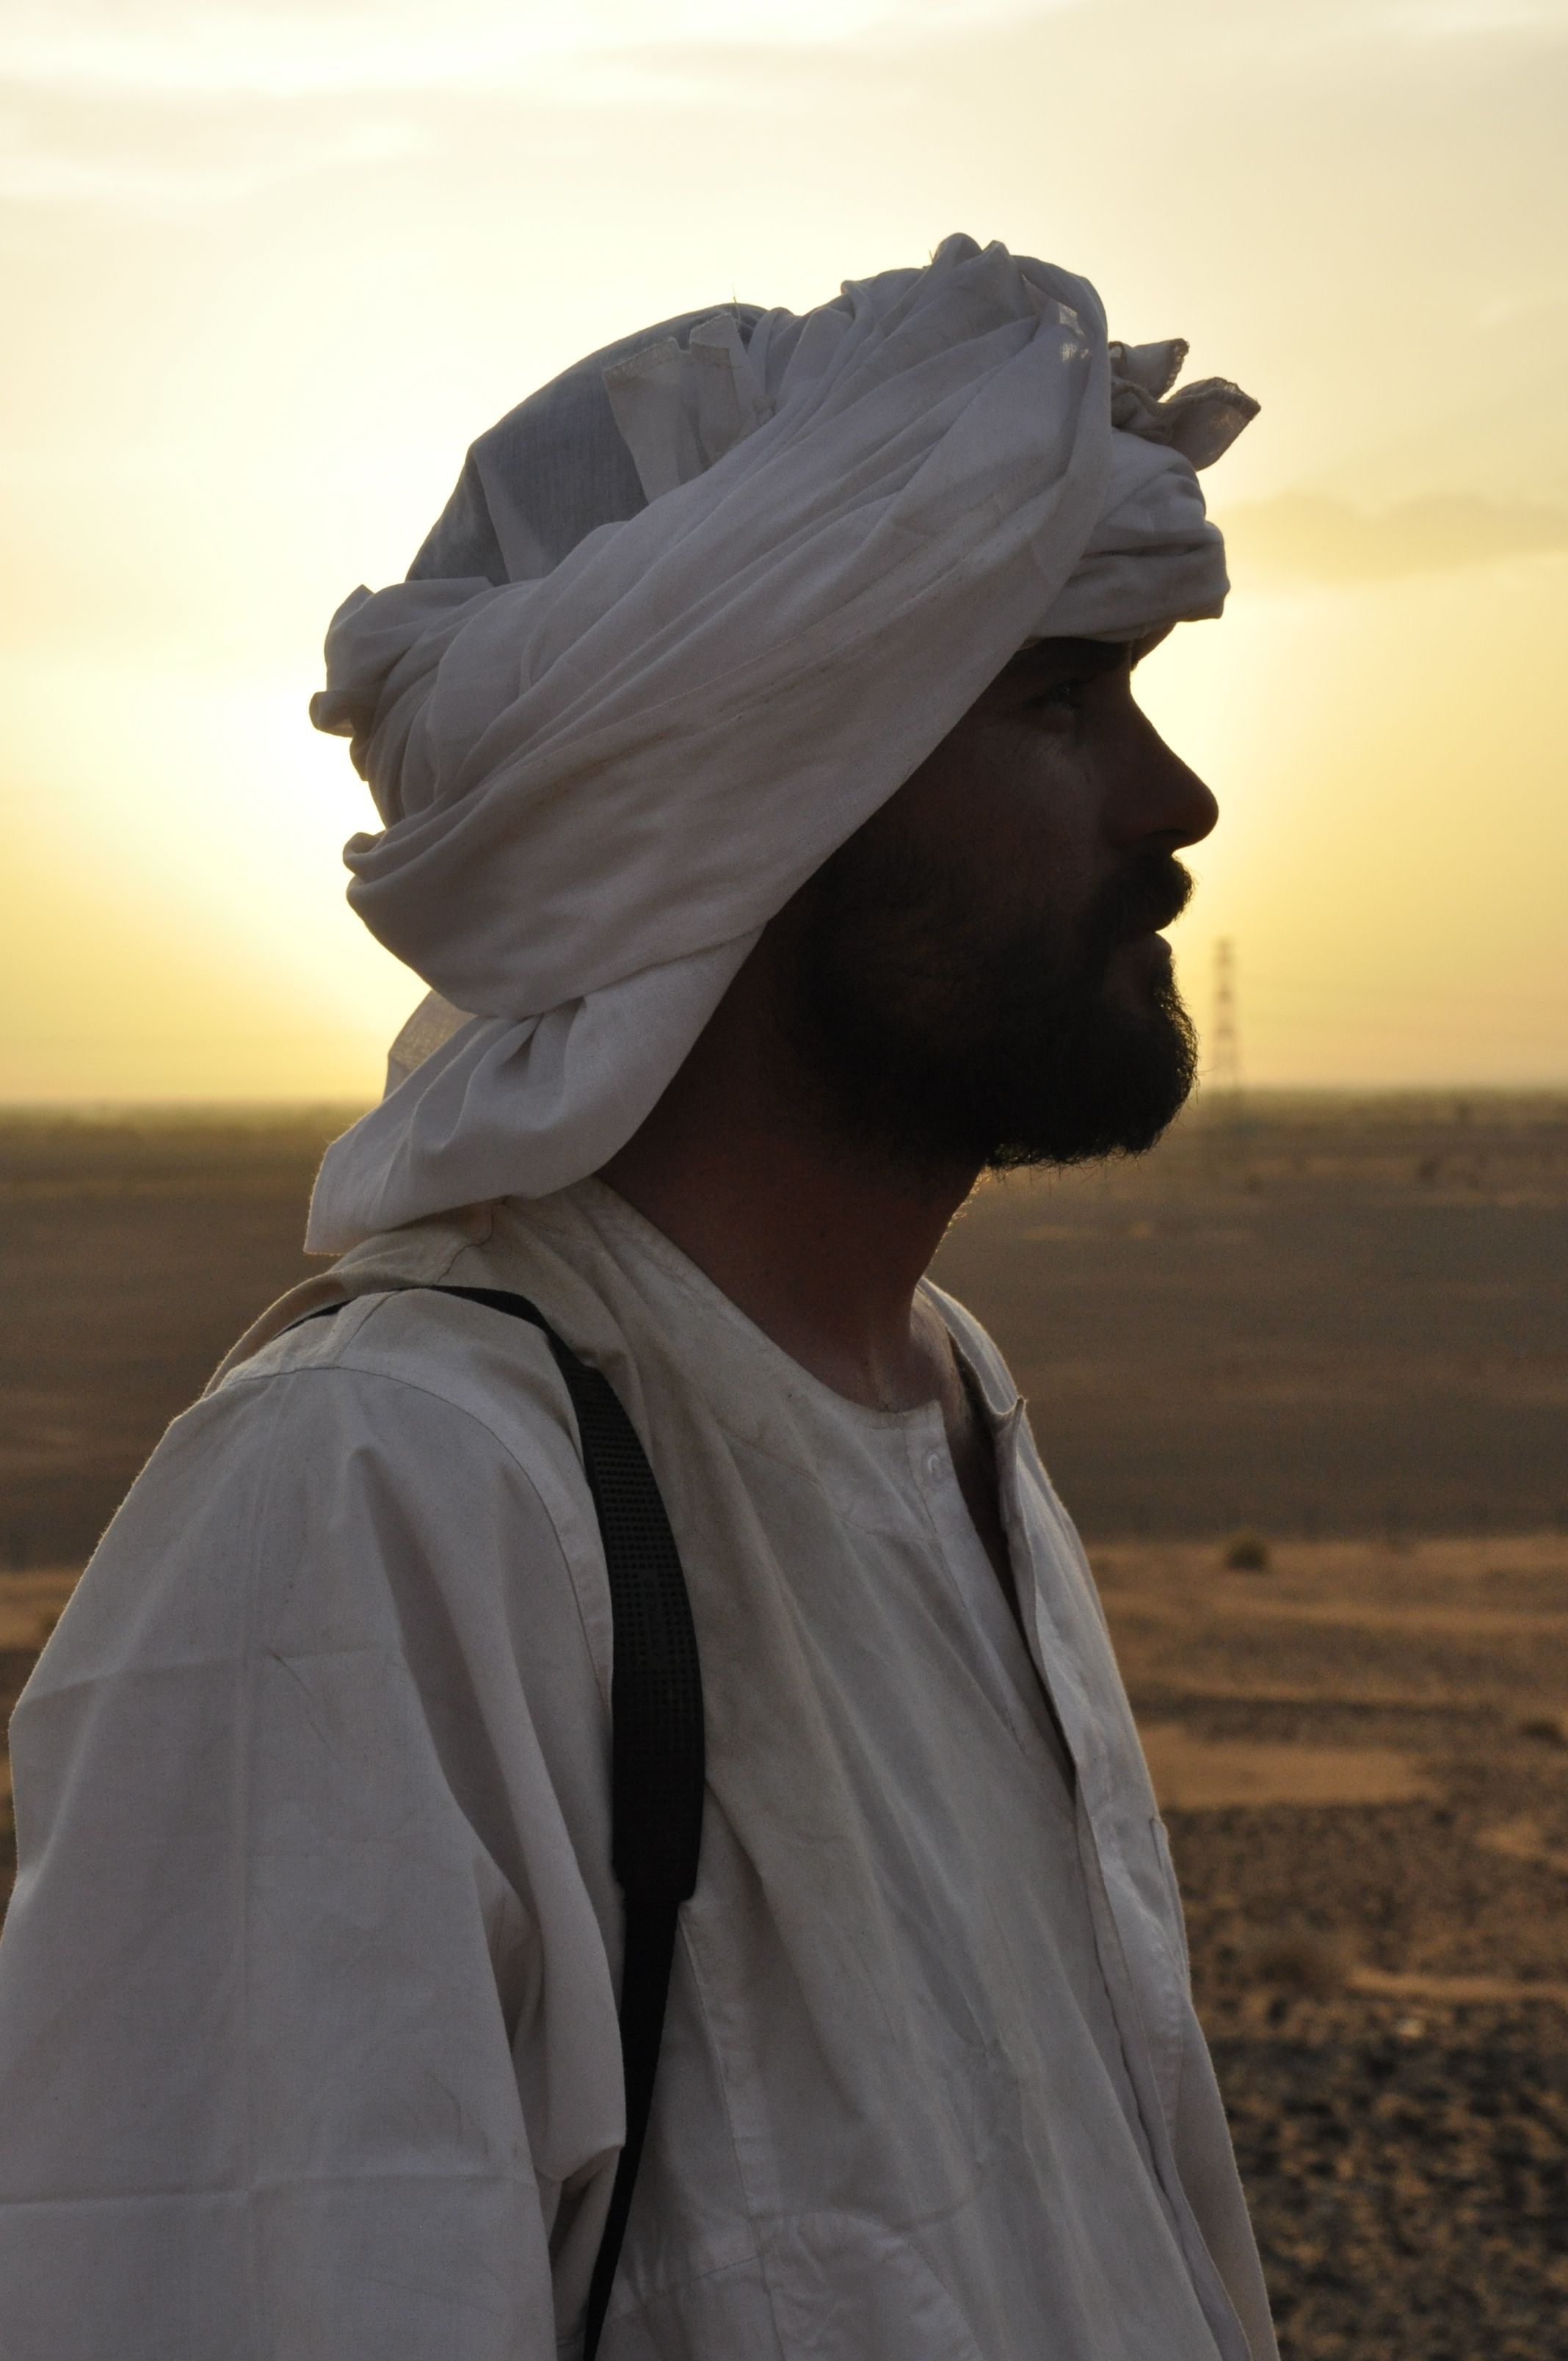 Day 210 - Sudan: Leaving Sudan